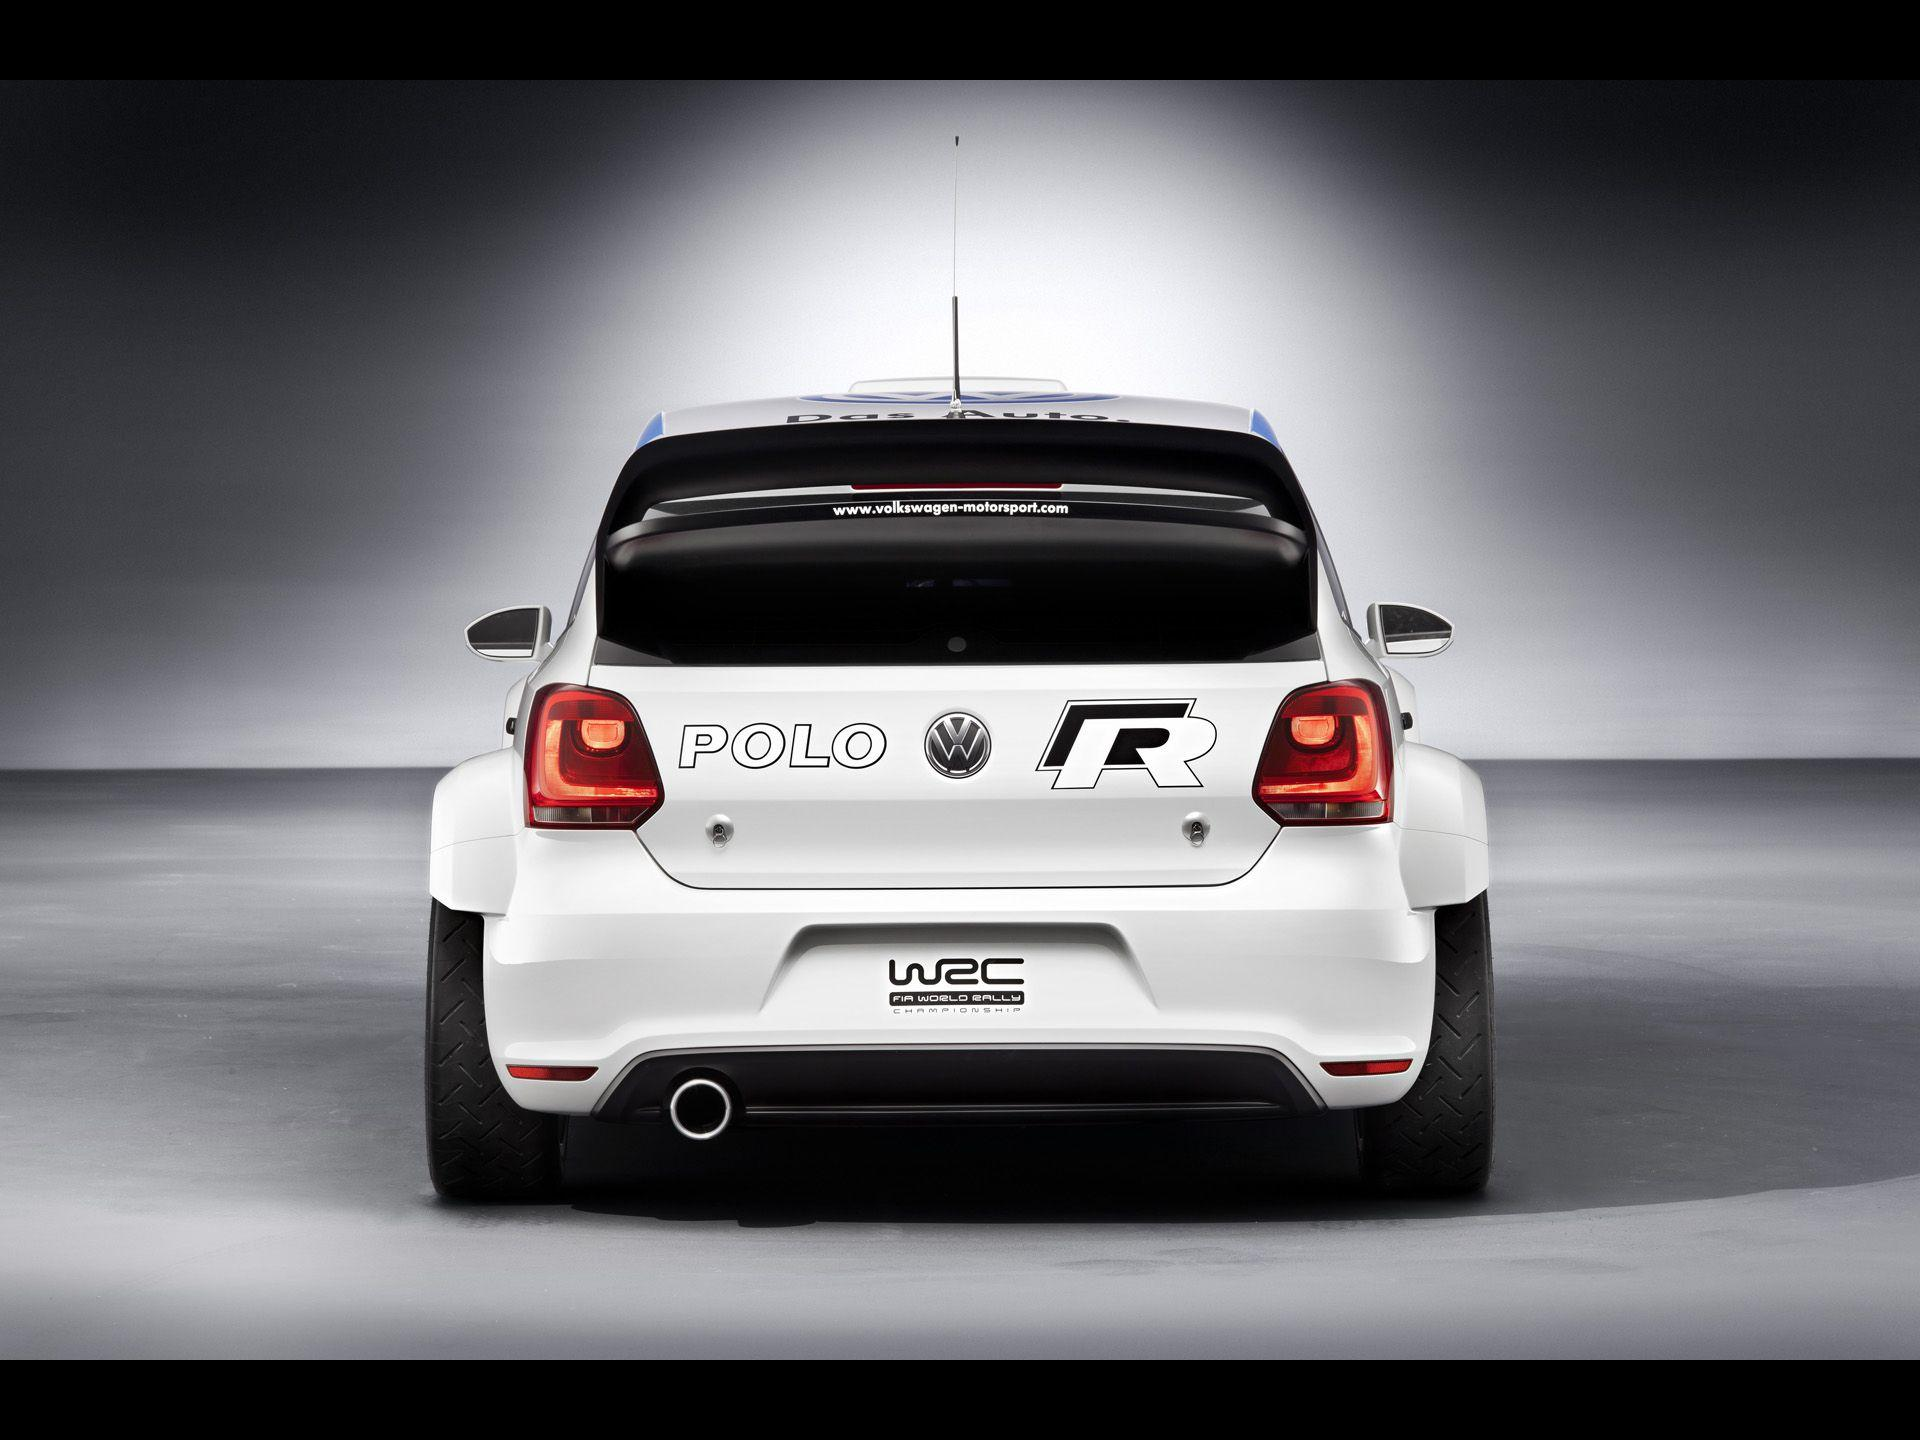 2011 Volkswagen Polo R WRC Concept - Rear - 1920x1440 - Wallpaper